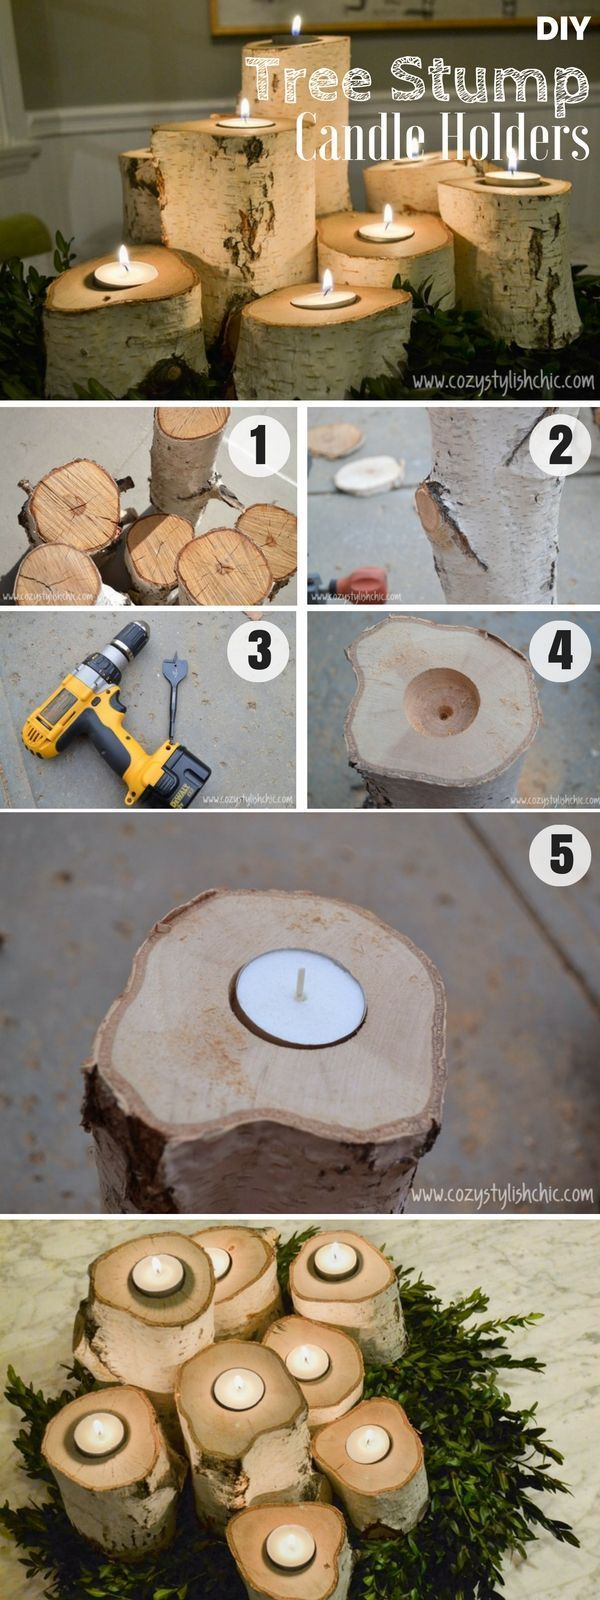 Brilliant rustic easy to make DIY Tree Stump Candle Holders for fall decor /istandarddesign/